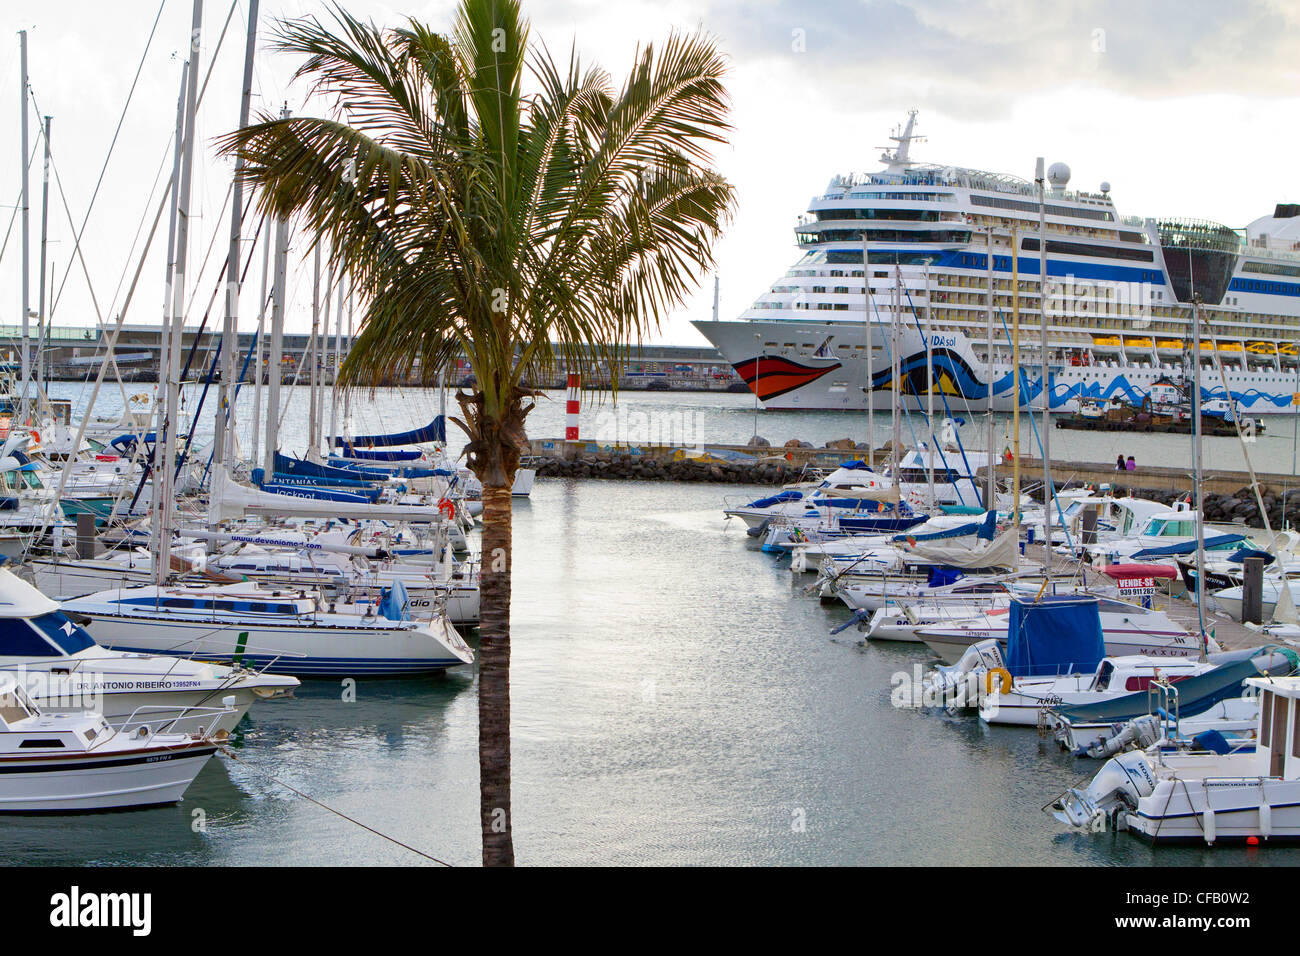 Marina in Funchal, Madeira, portugal - Stock Image